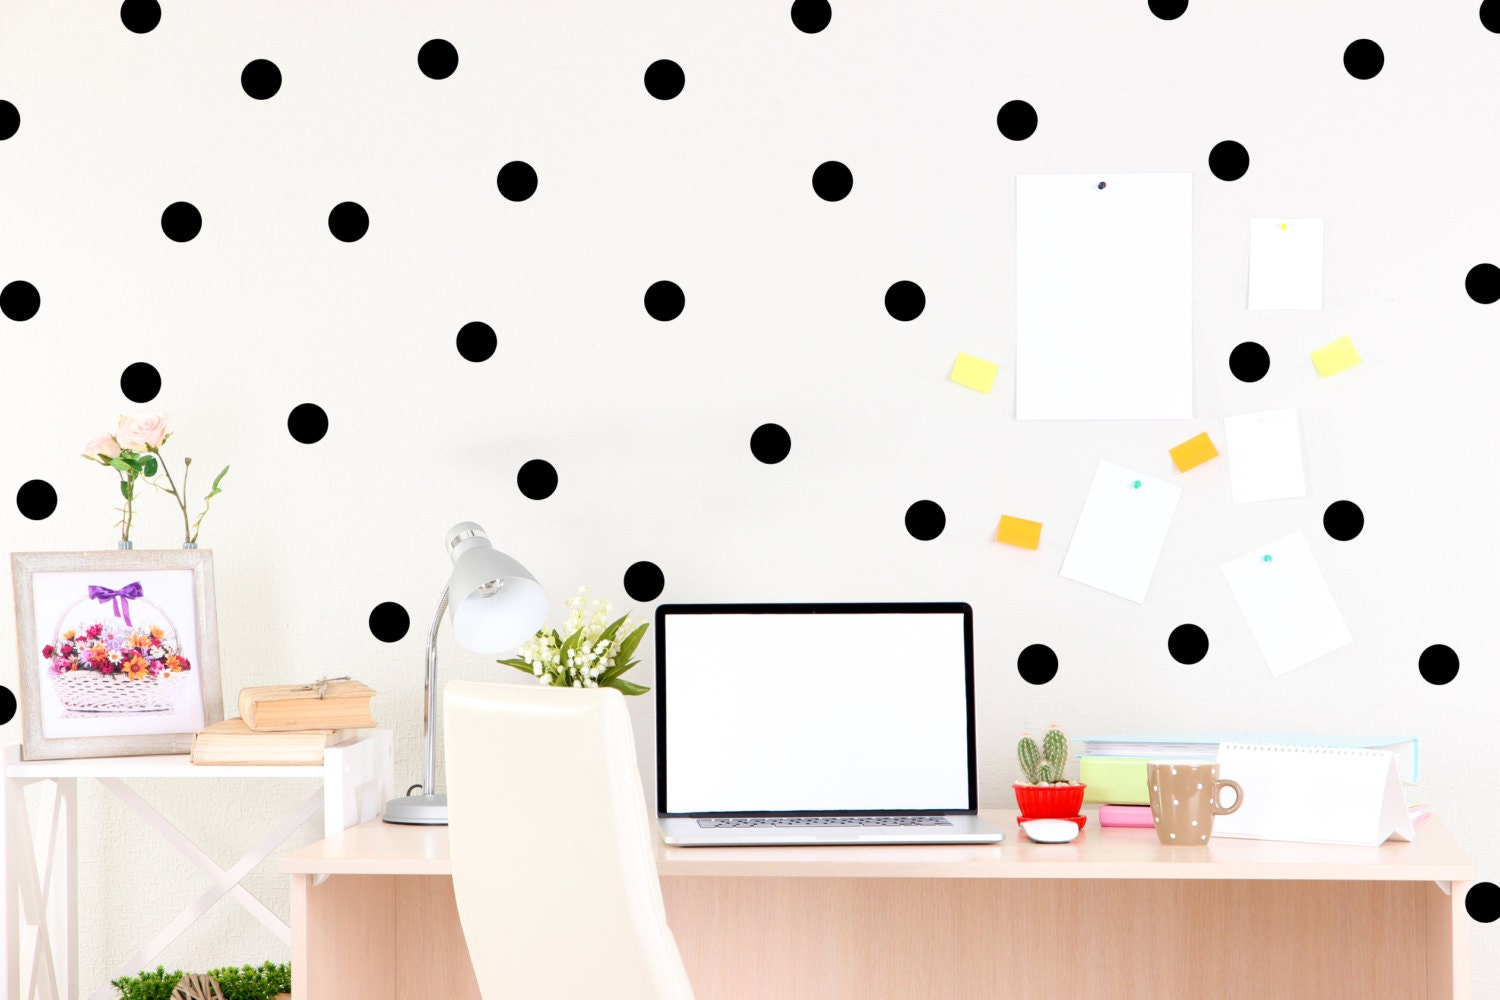 Pictures of every single item we own - Man Vs. Debt Pictures of polka dot walls